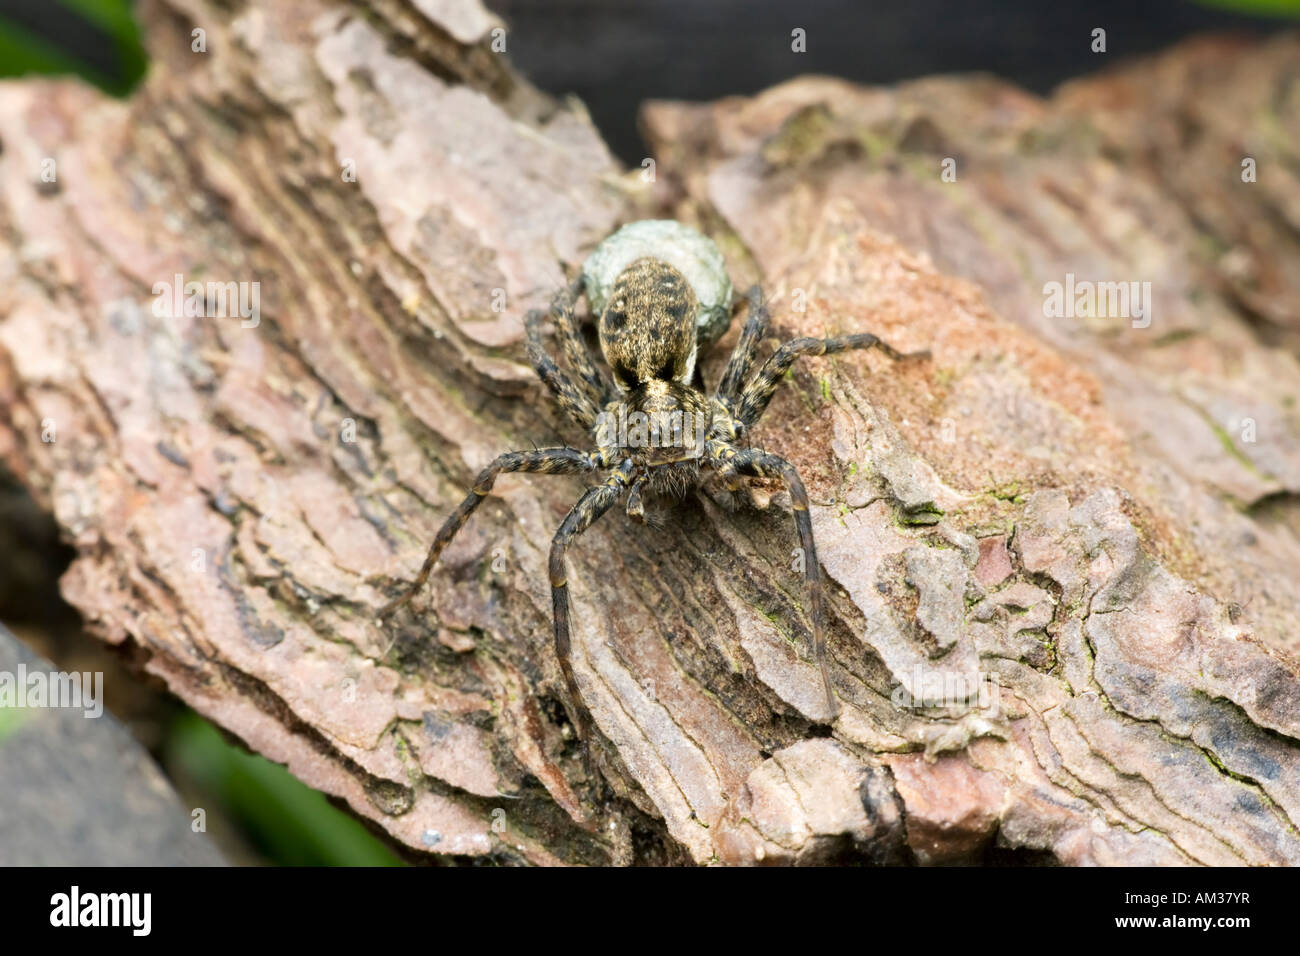 A Wolf Spider (Pardosa amentata) with an egg sac on a piece of bark. UK - Stock Image